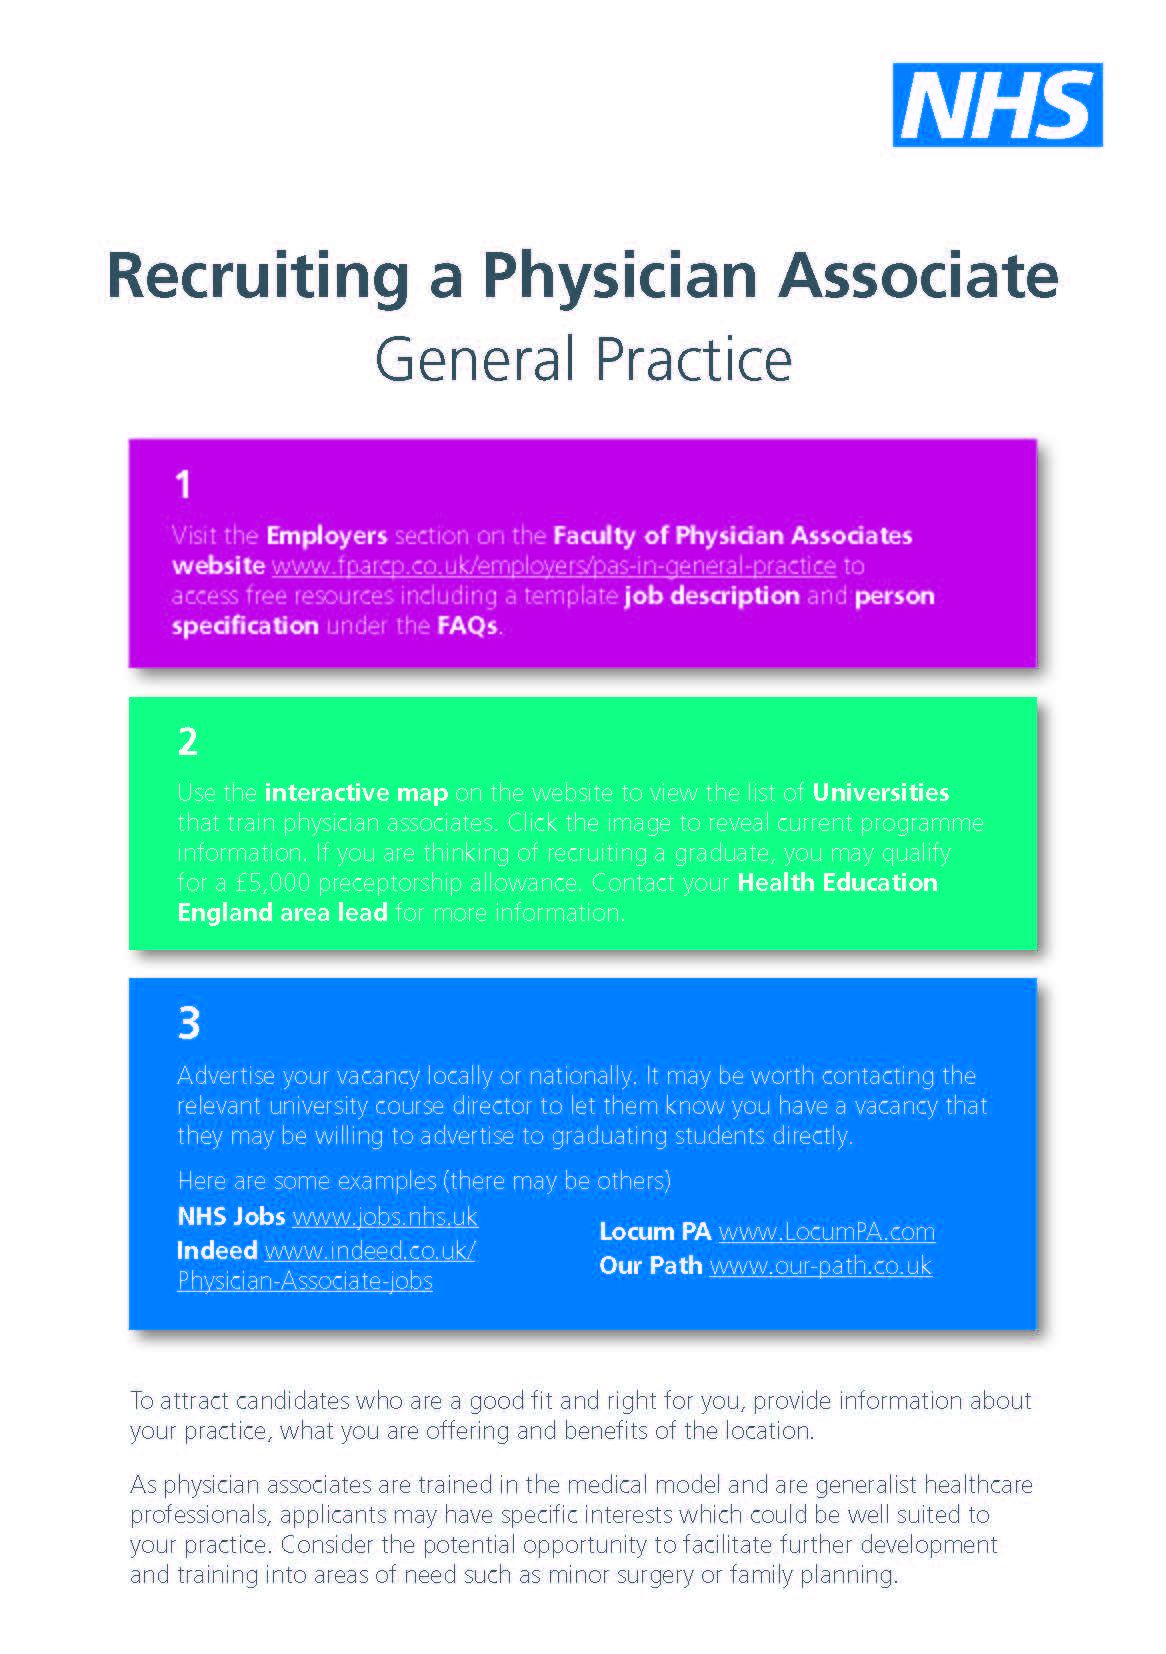 Faculty Of Physician Associates Quality Health Care Across The Nhs